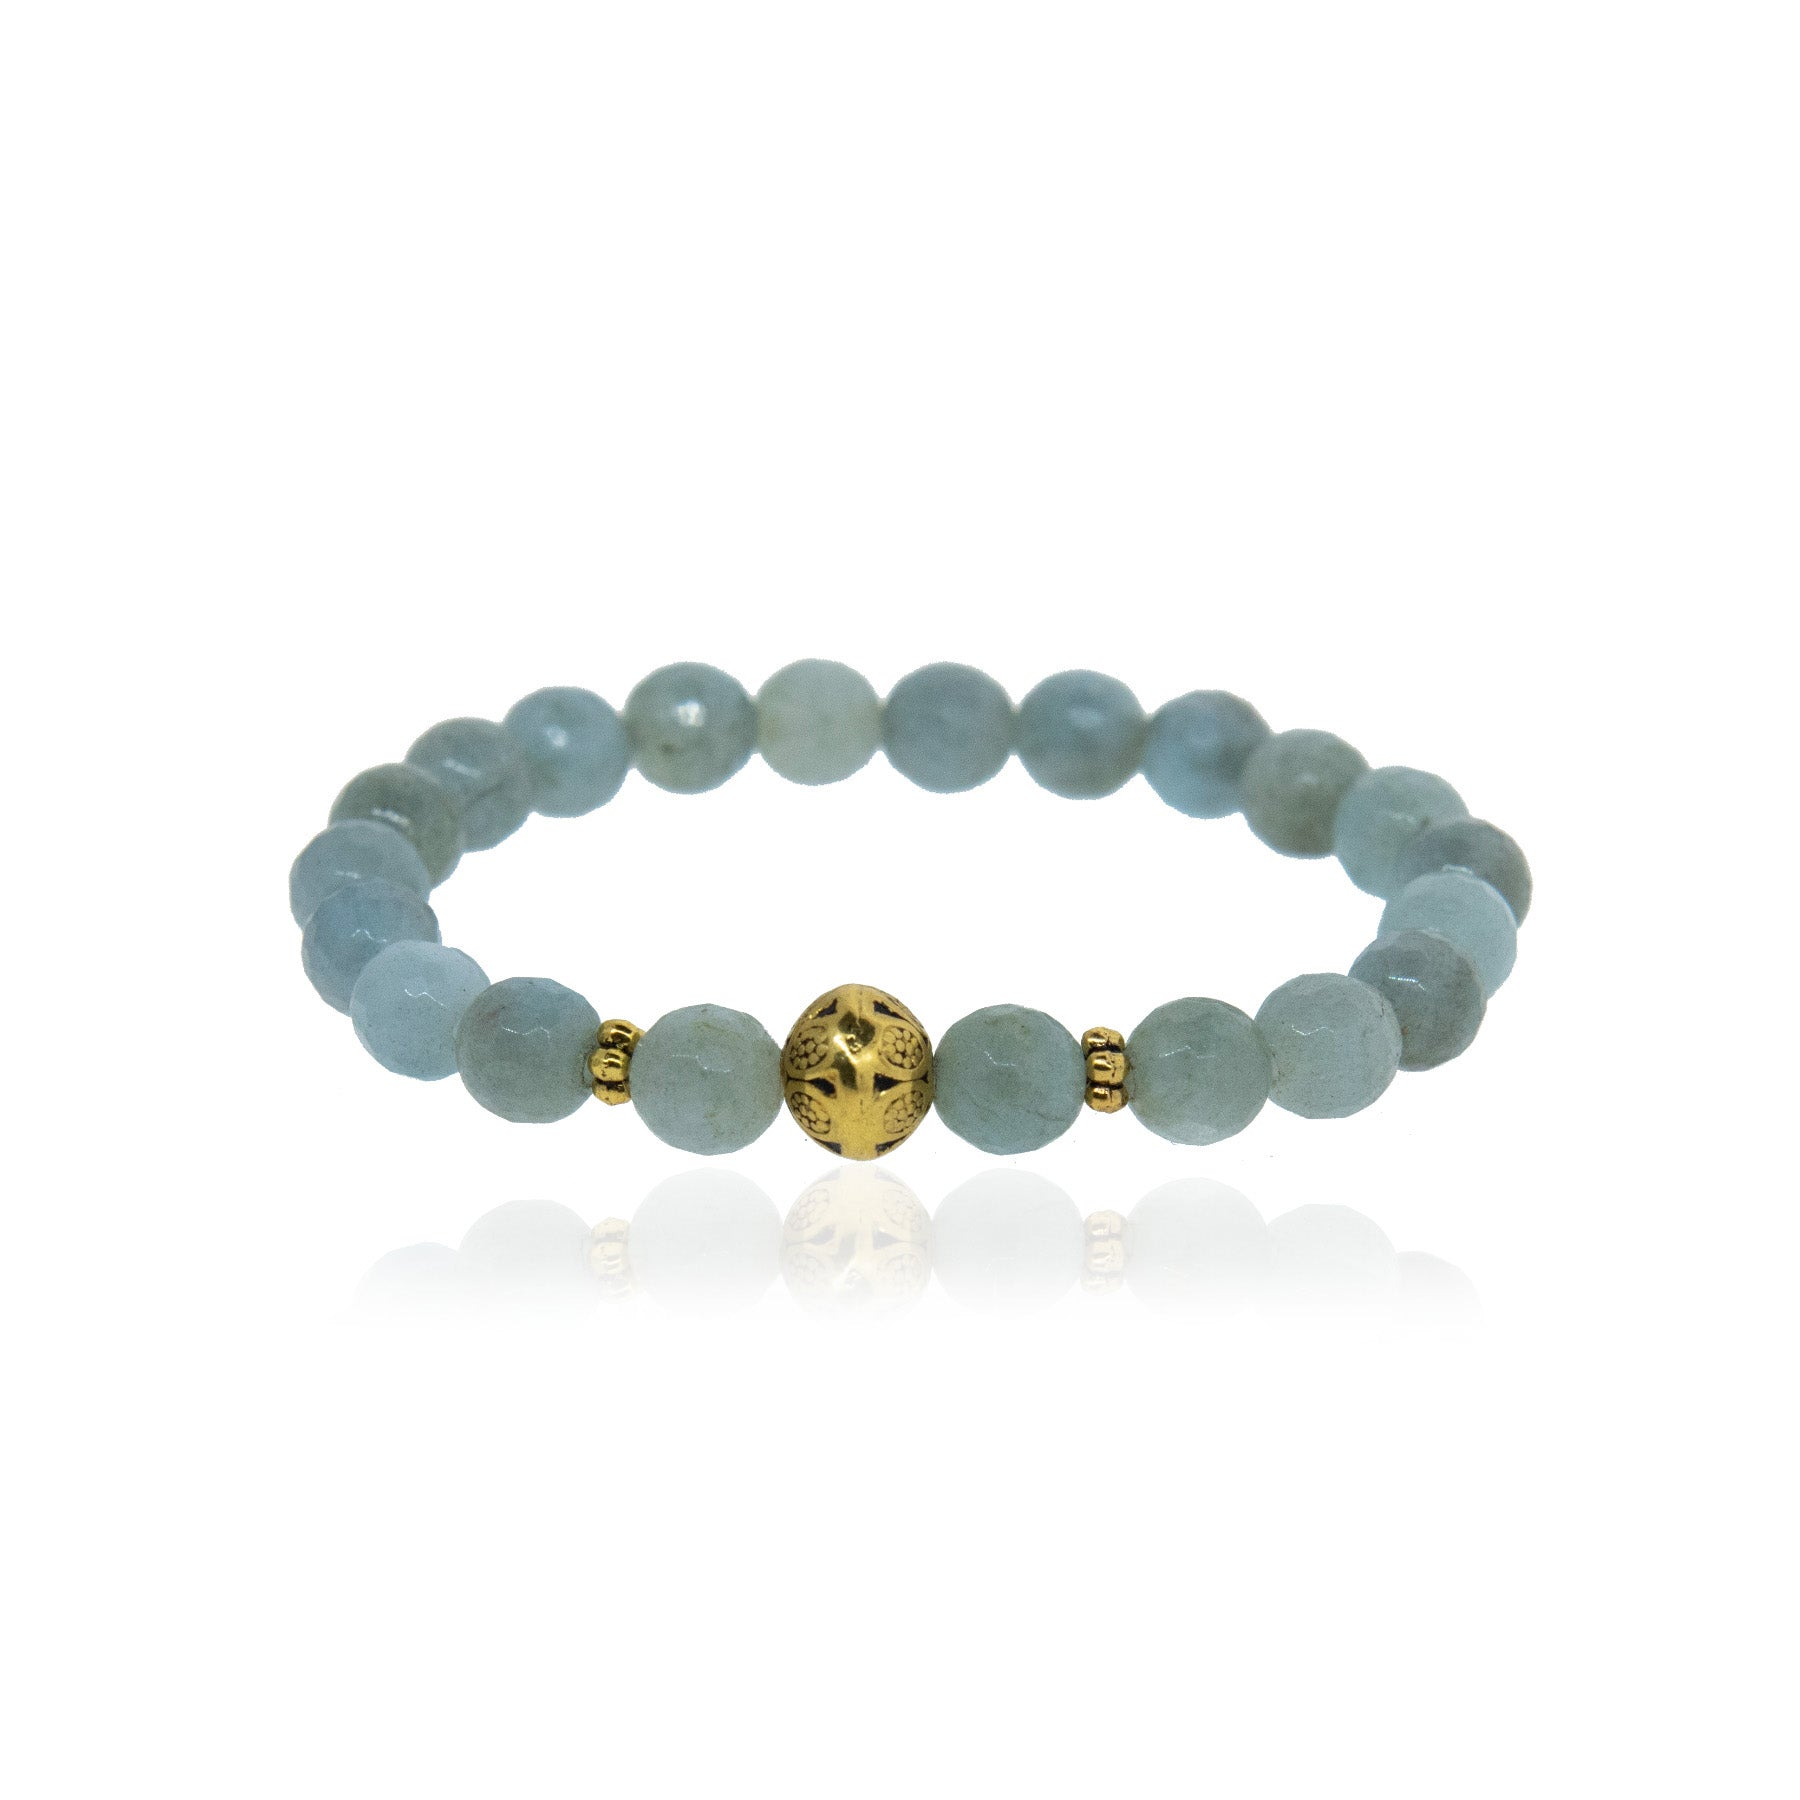 Aquamarine and Brass Ball Bracelet